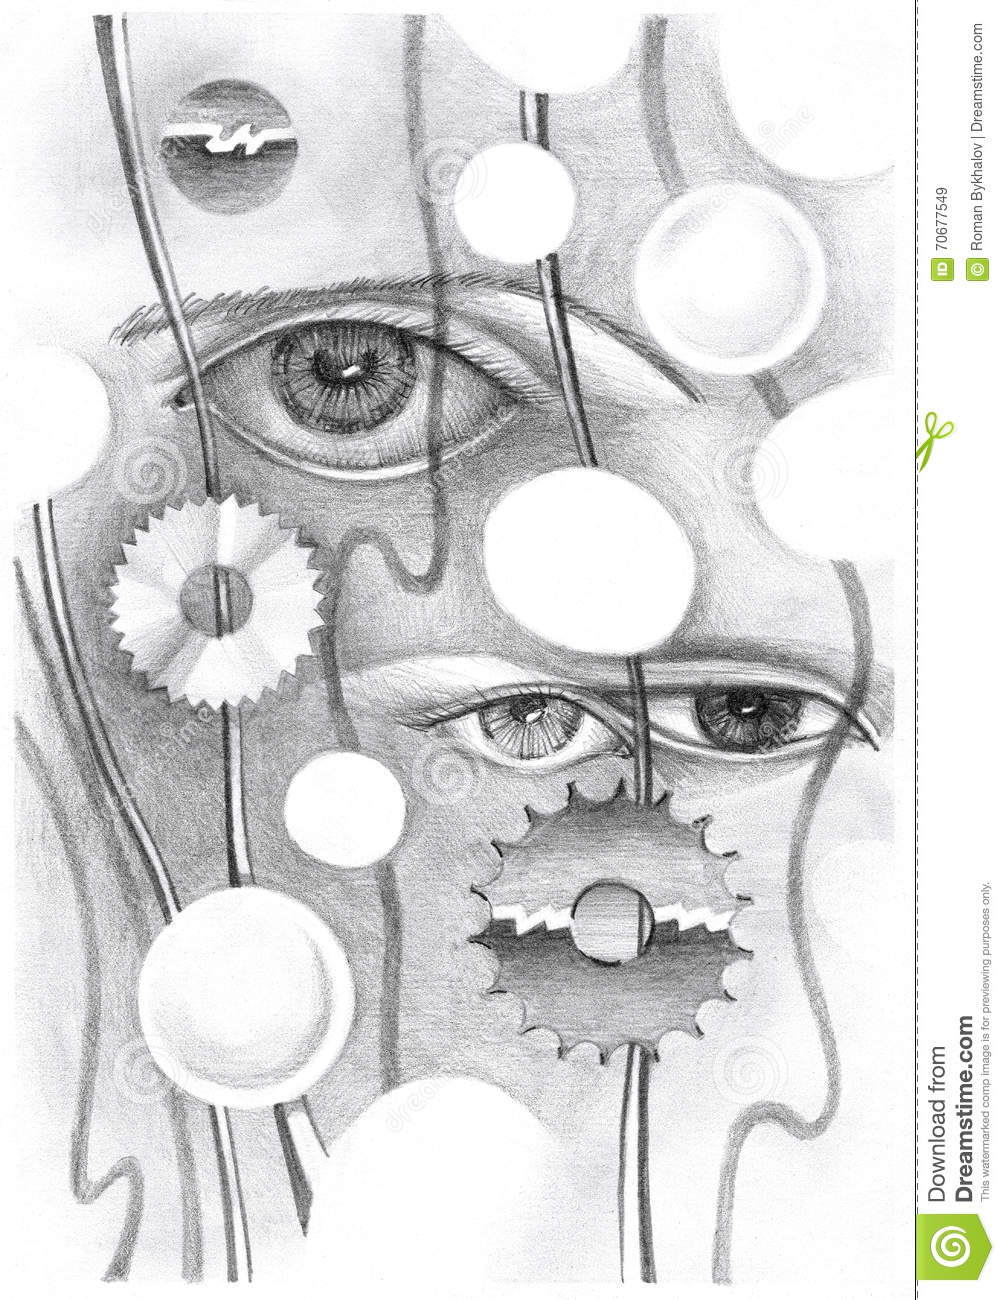 Abstract Drawing Of The Eye And Objects Stock Illustration